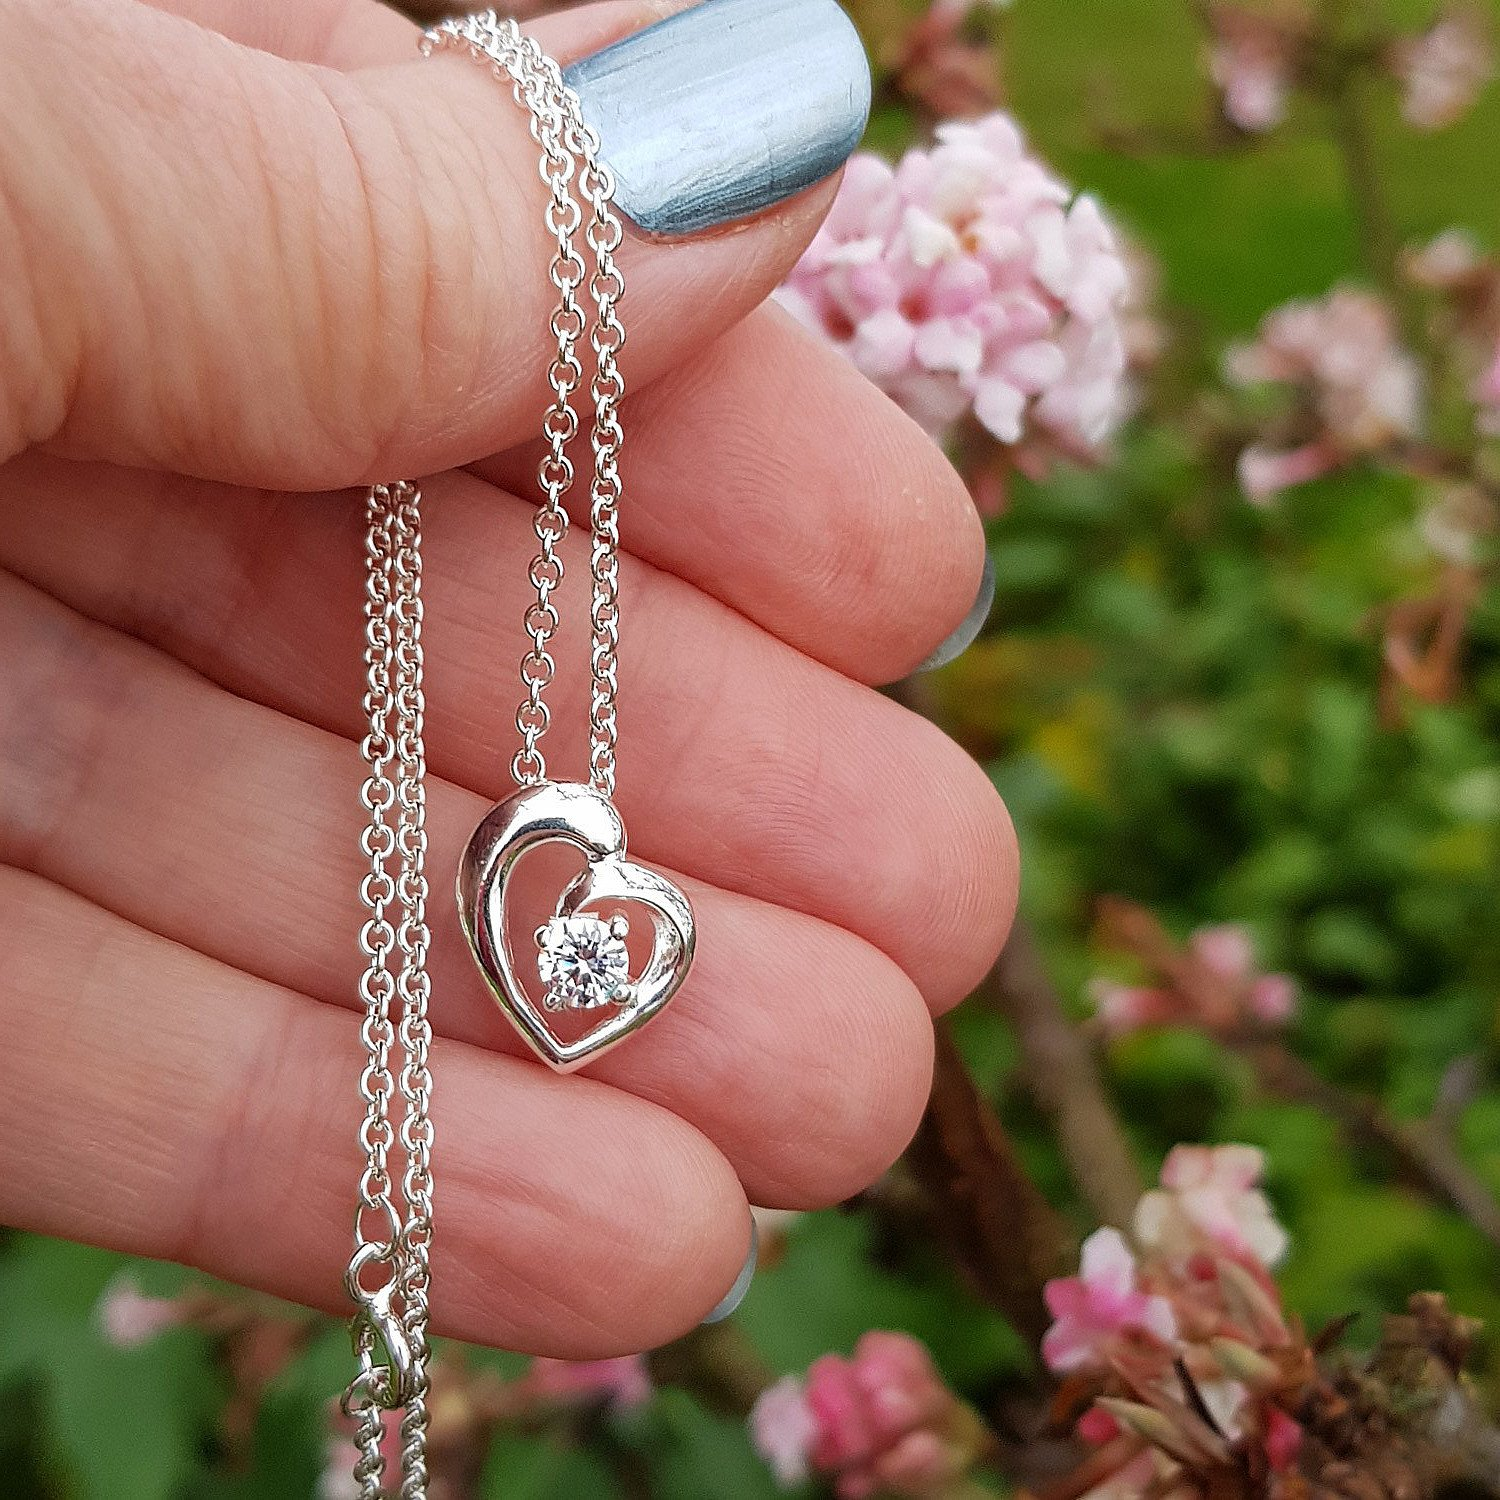 Gold, Silver and Fashion Jewellery with Hearts from Callibeau Jewellery